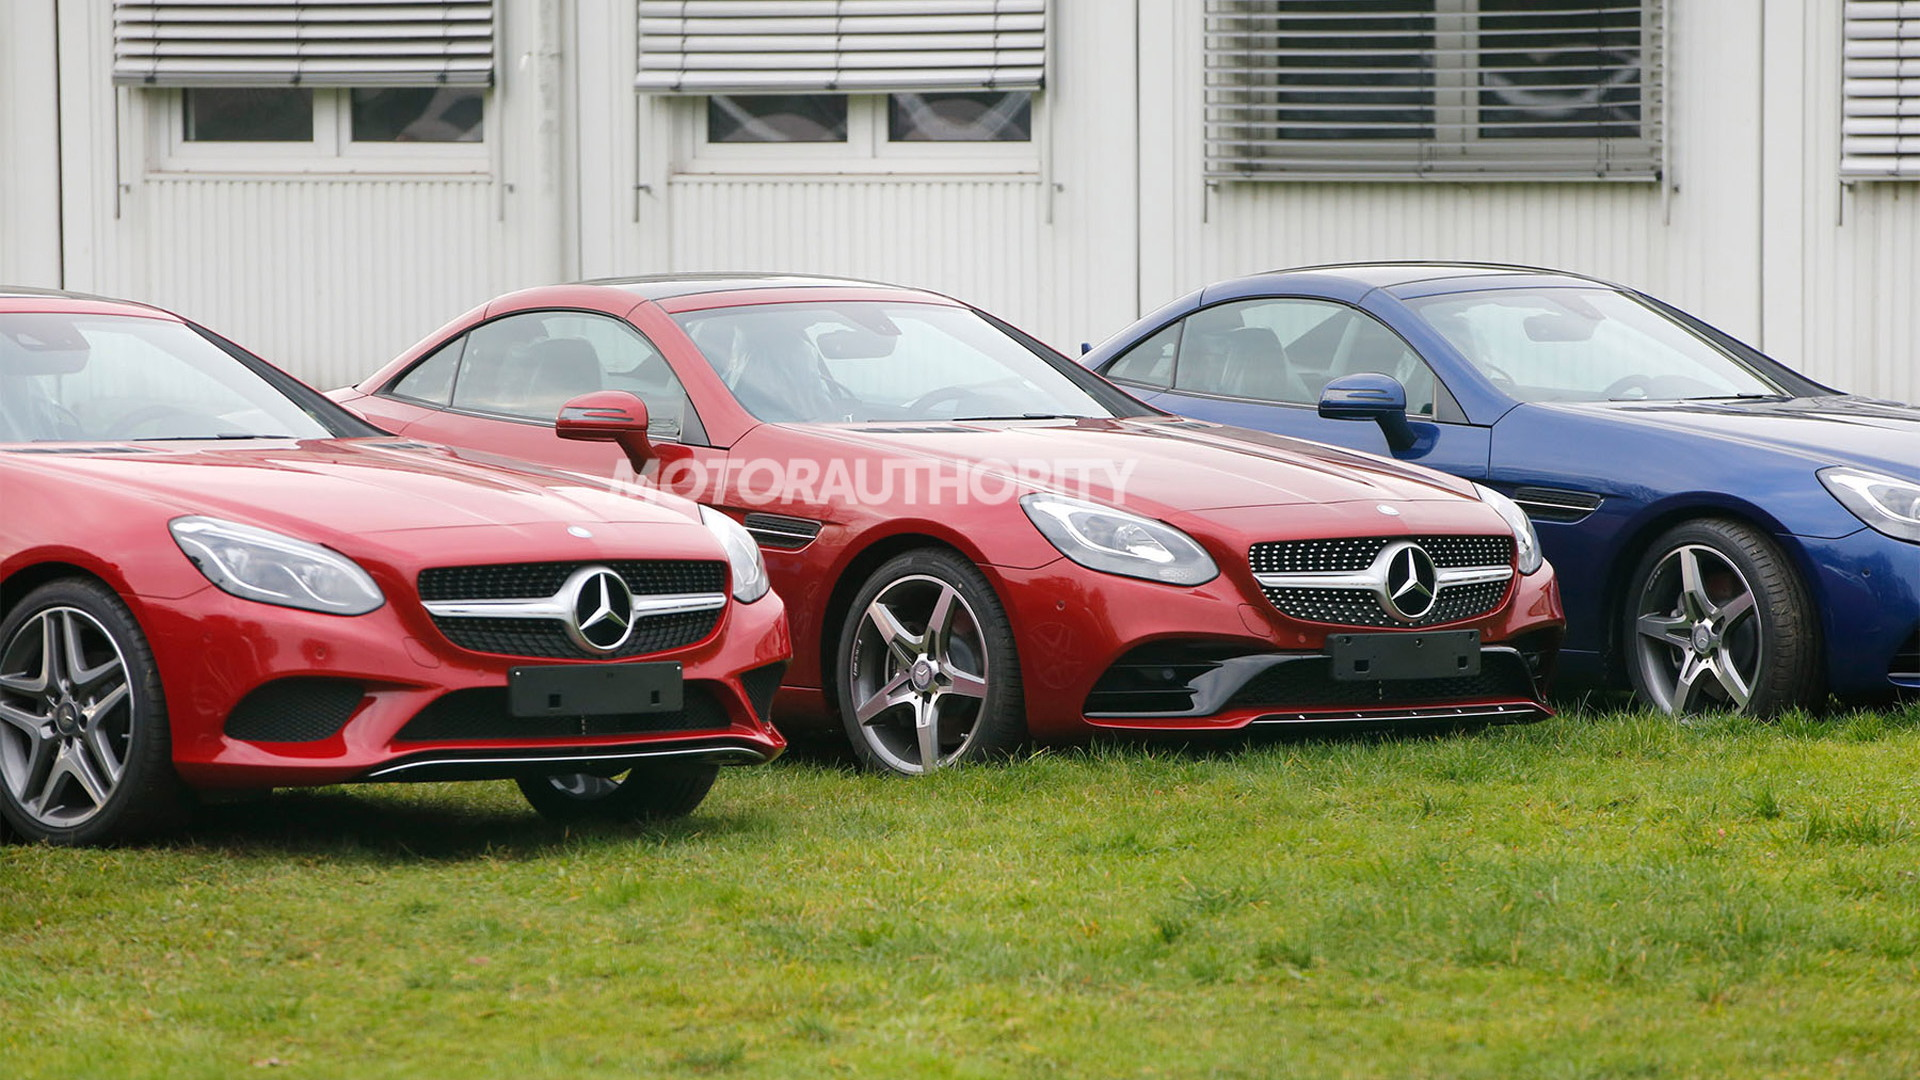 2017 Mercedes-Benz SLC (SLK-Class facelift) spy shots - Image via S. Baldauf/SB-Medien